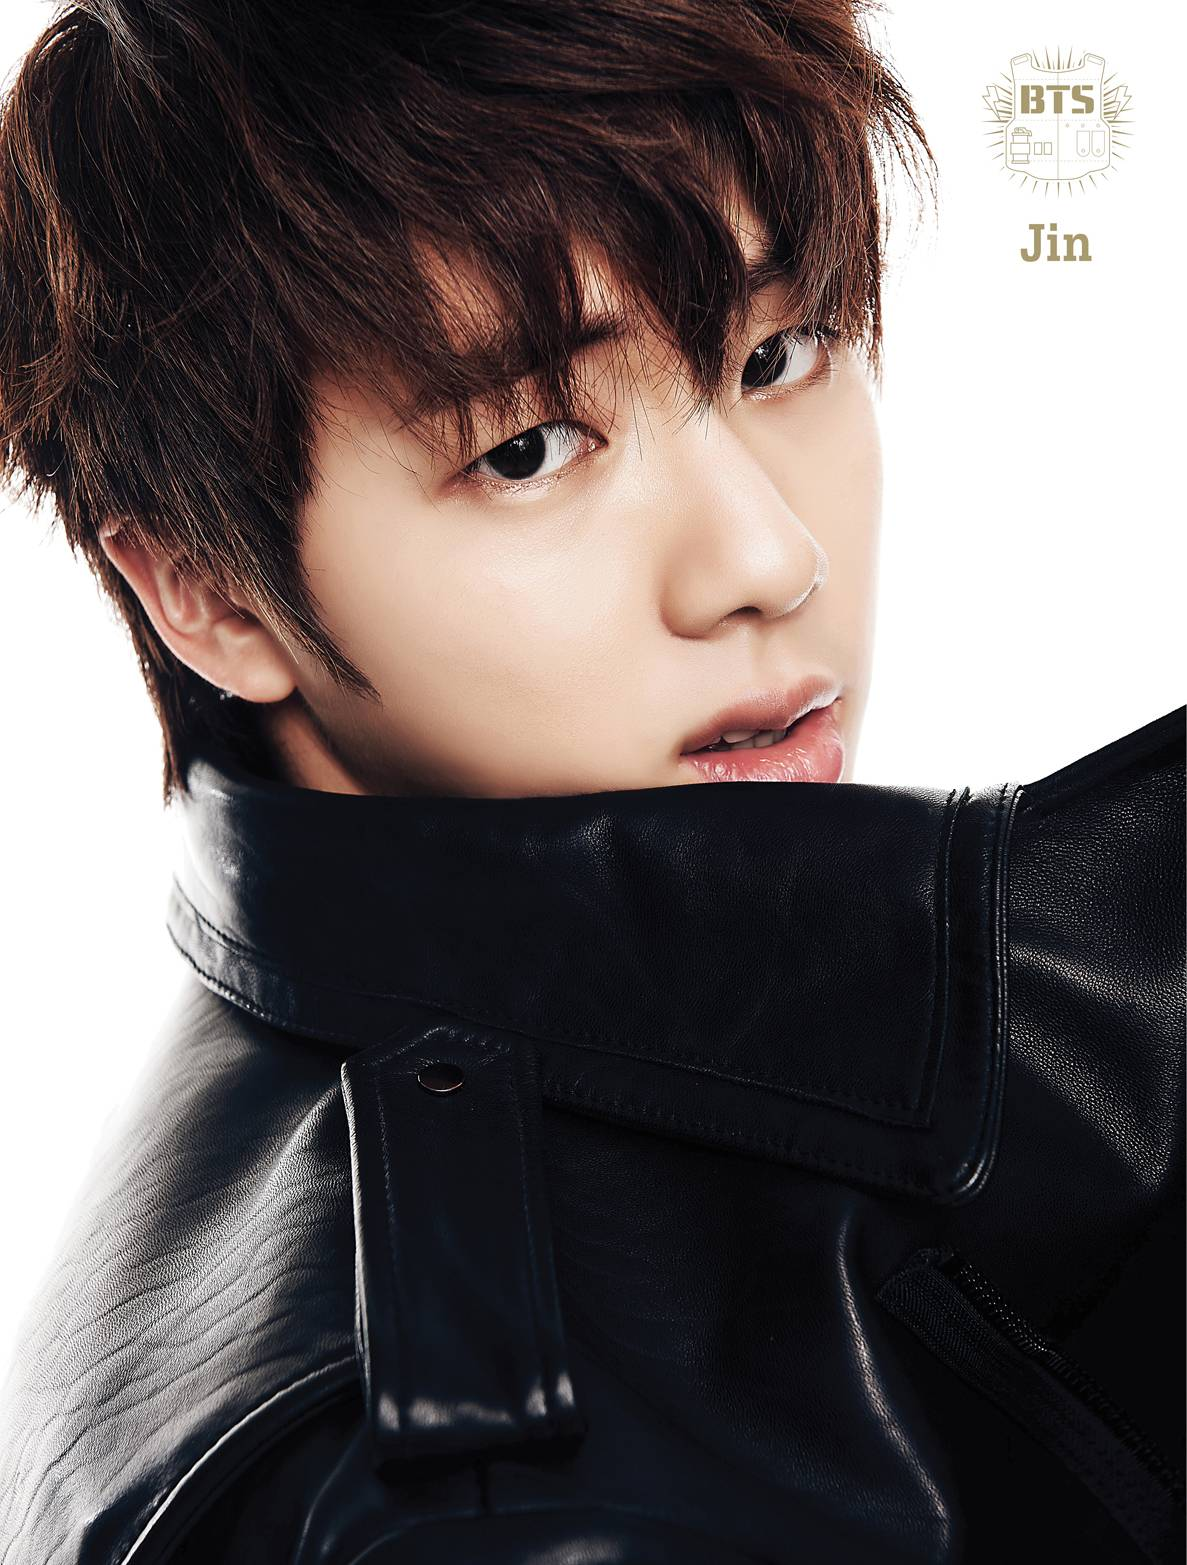 jin   Bangtan Boys Wallpaper 1187x1565